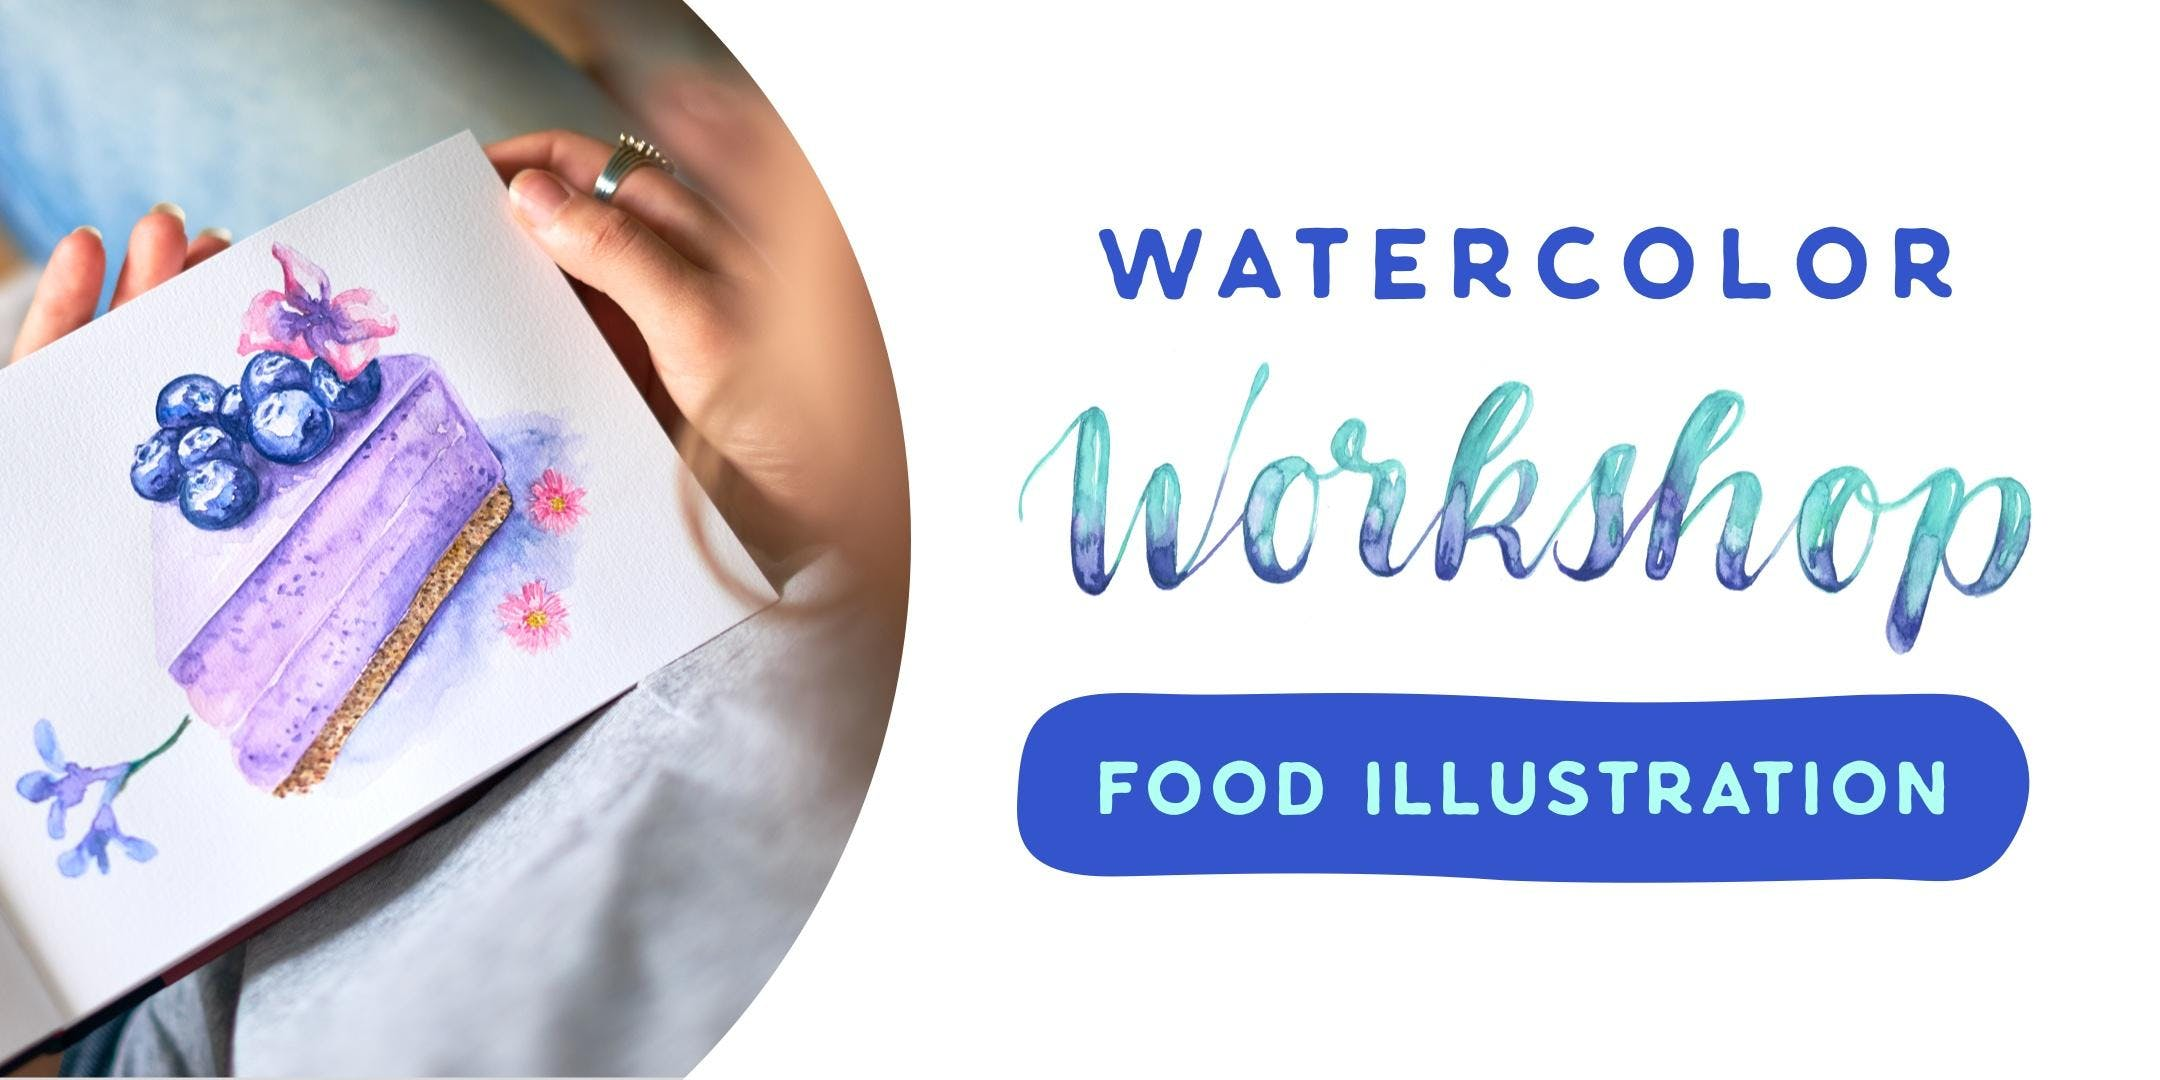 Watercolor Workshop - Food Illustration - Köln